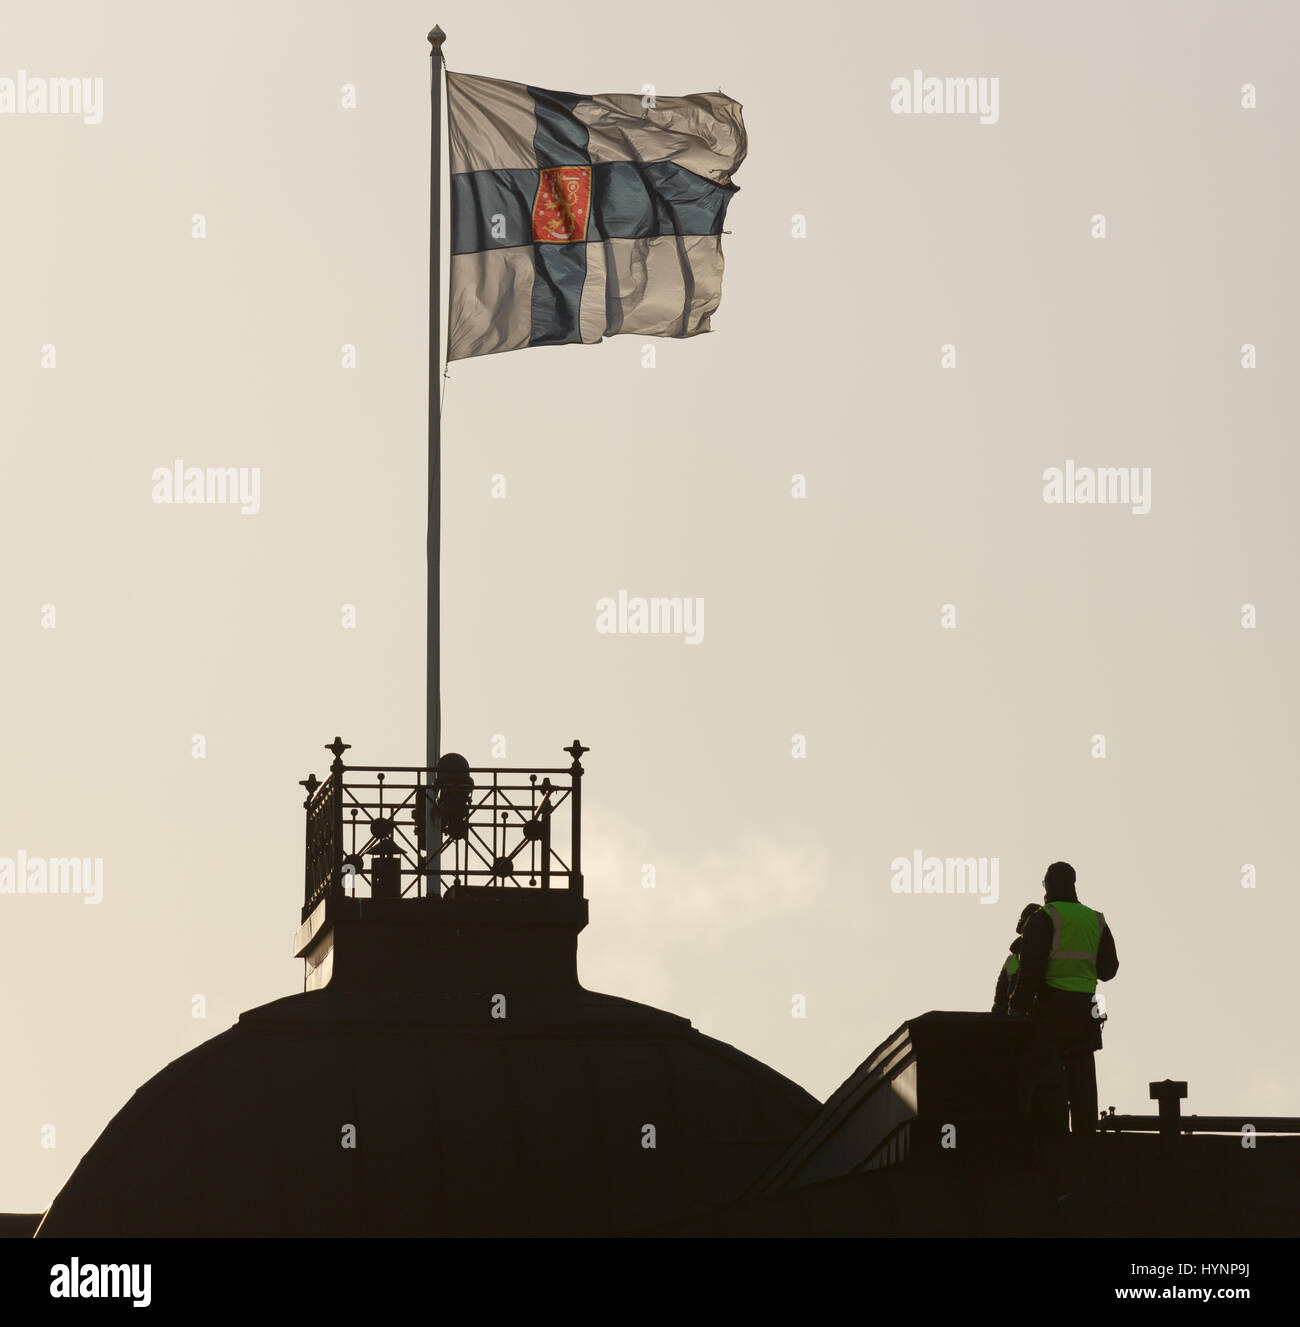 Helsinki, Finland. 5th April, 2017. Police observer on a rooftop works for the security arrangements in Helsinki Stock Photo